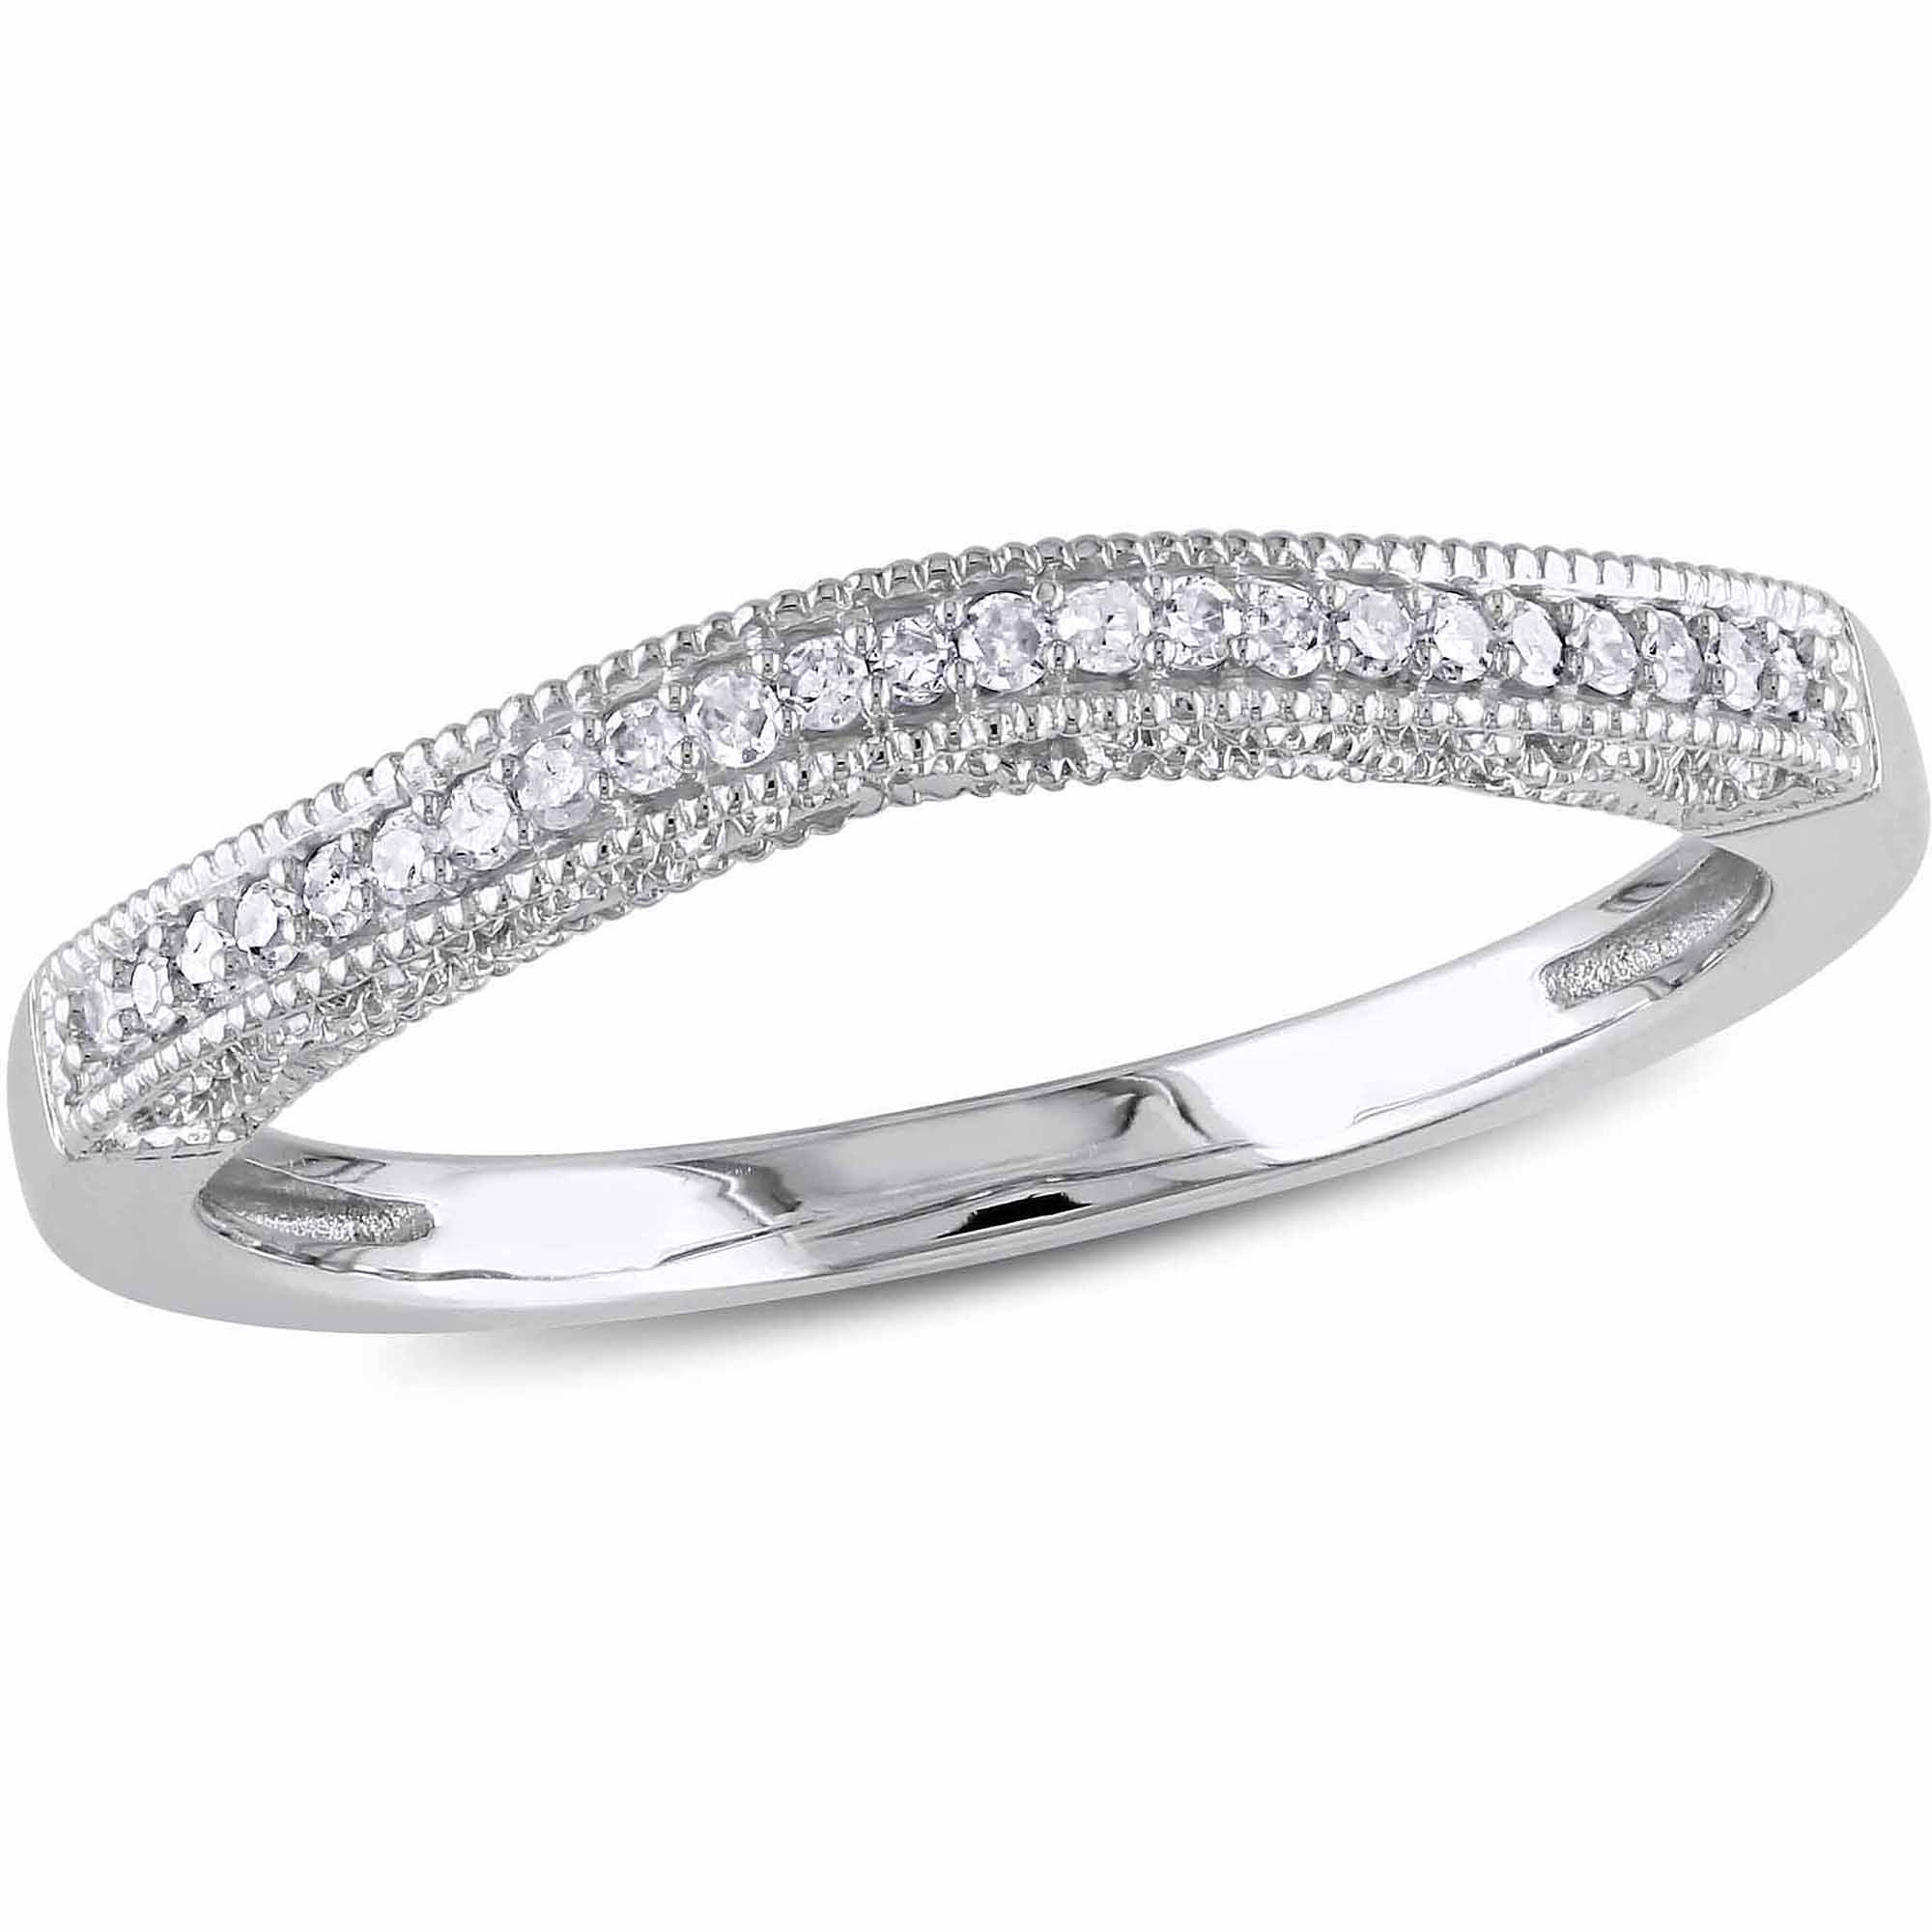 Miabella Diamond-Accent 10kt White Gold Wedding Band by Delmar Manufacturing LLC